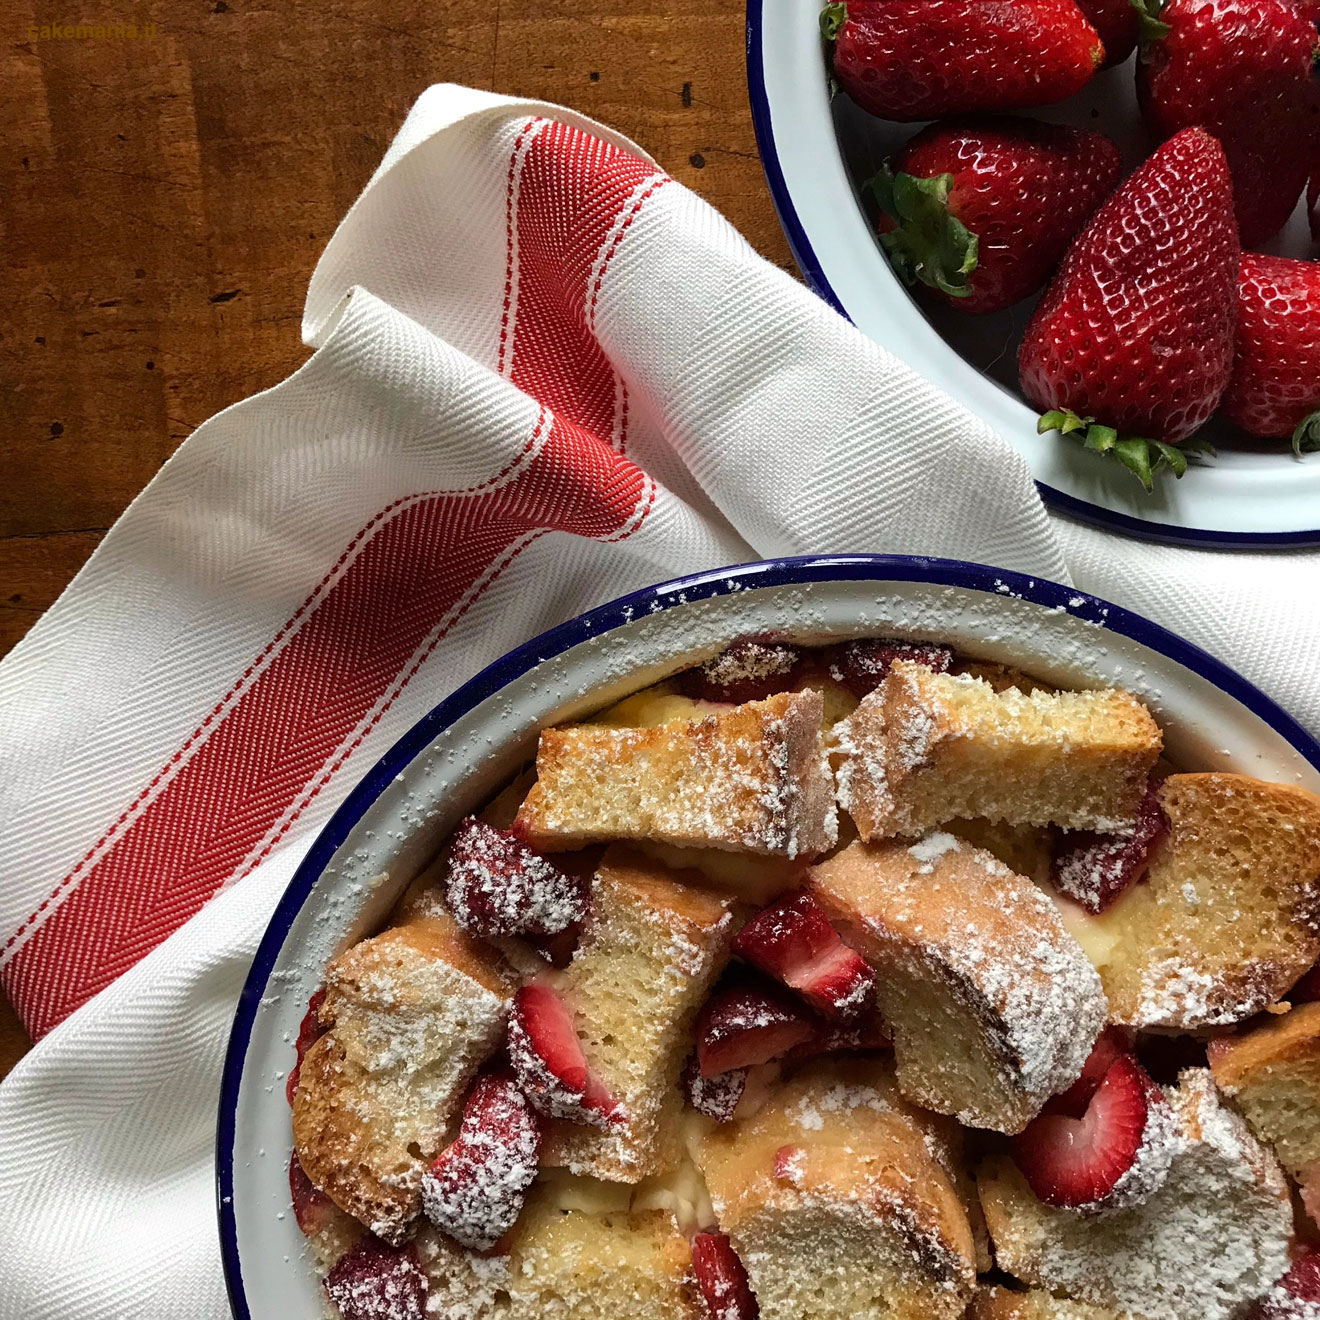 bread andbutter pudding strawberry